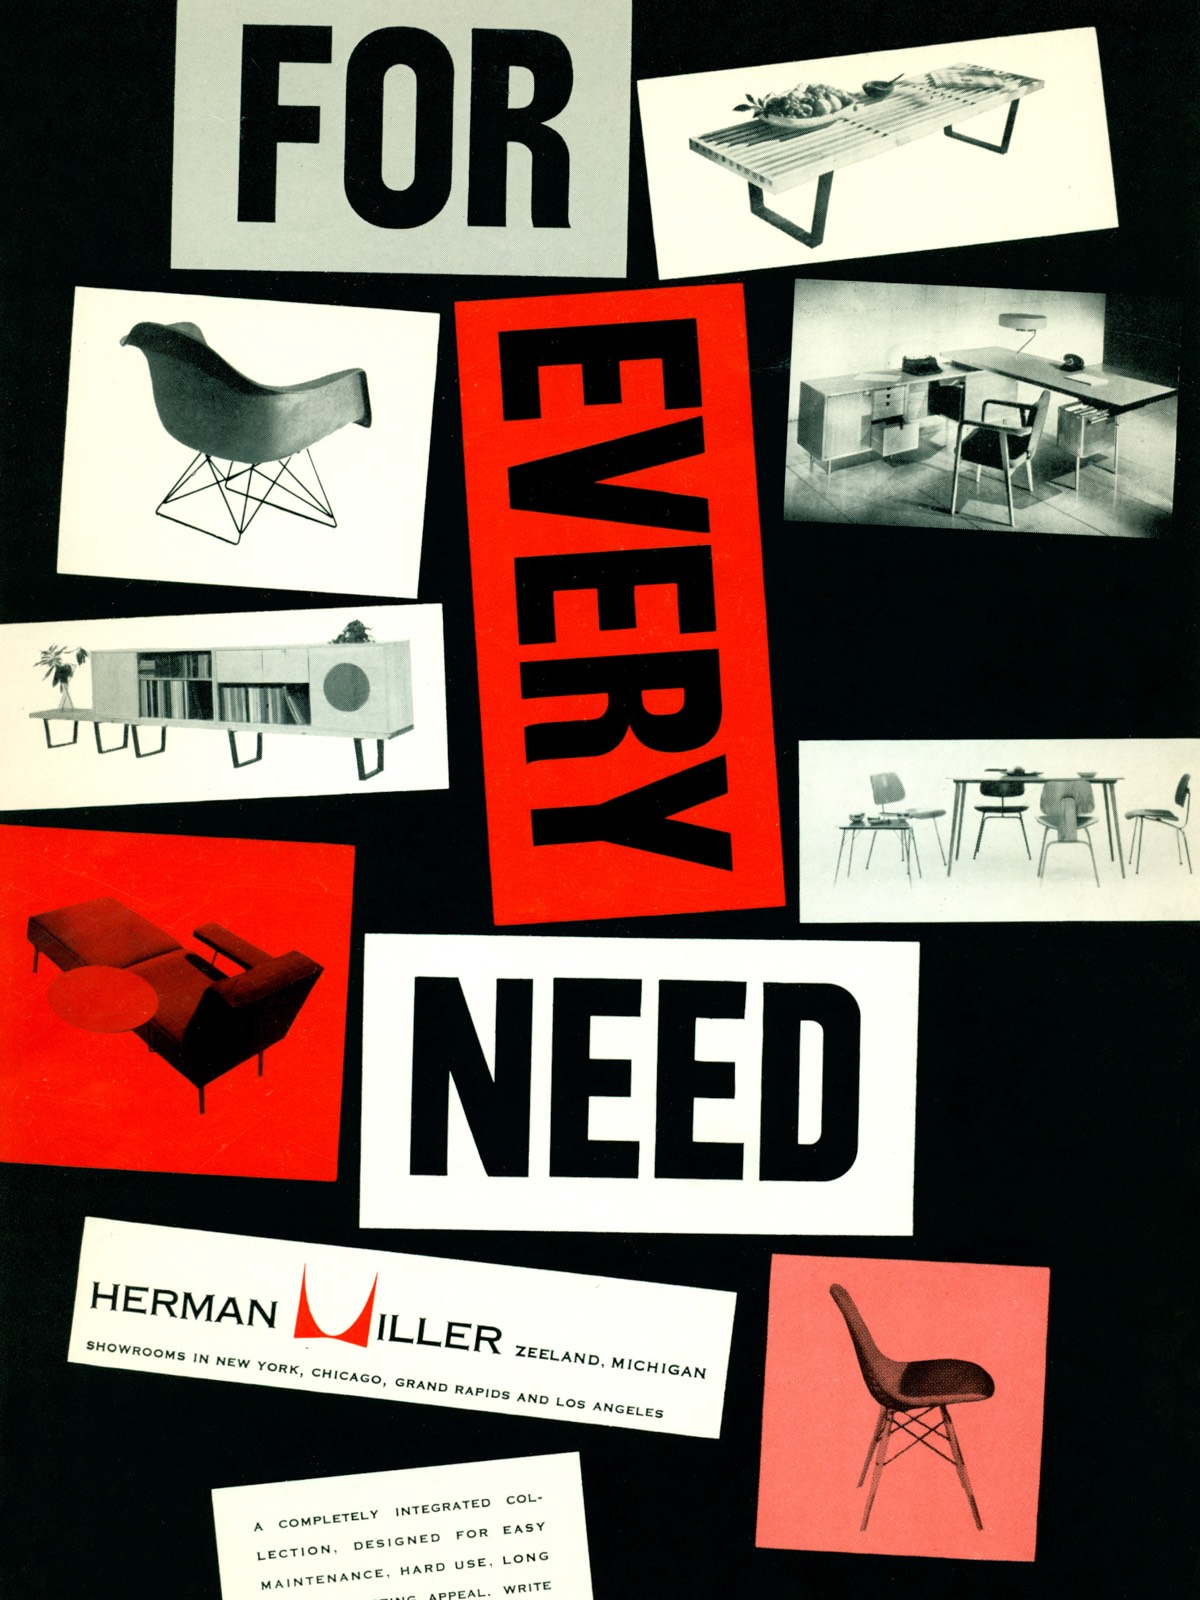 A poster showing photos of various mid-century modern furniture pieces.